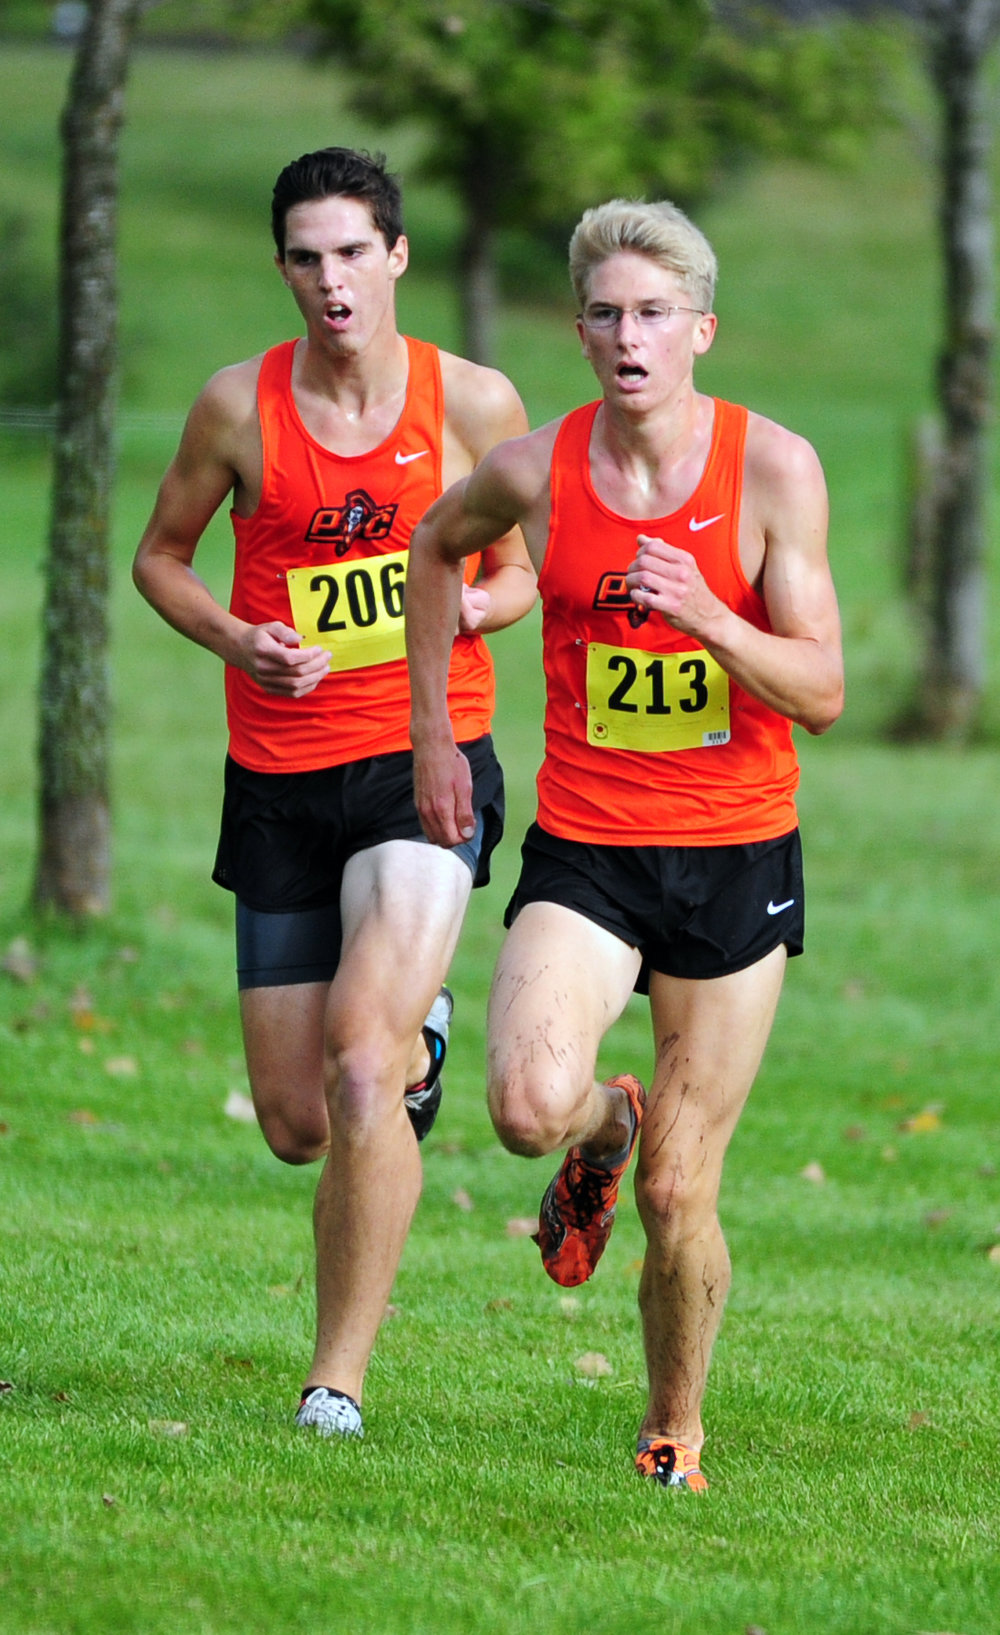 NICK INGRAM/Citizen photo Platte County junior Keegan Cordova, left, and senior Nick Bjustrom battle for position in the race.